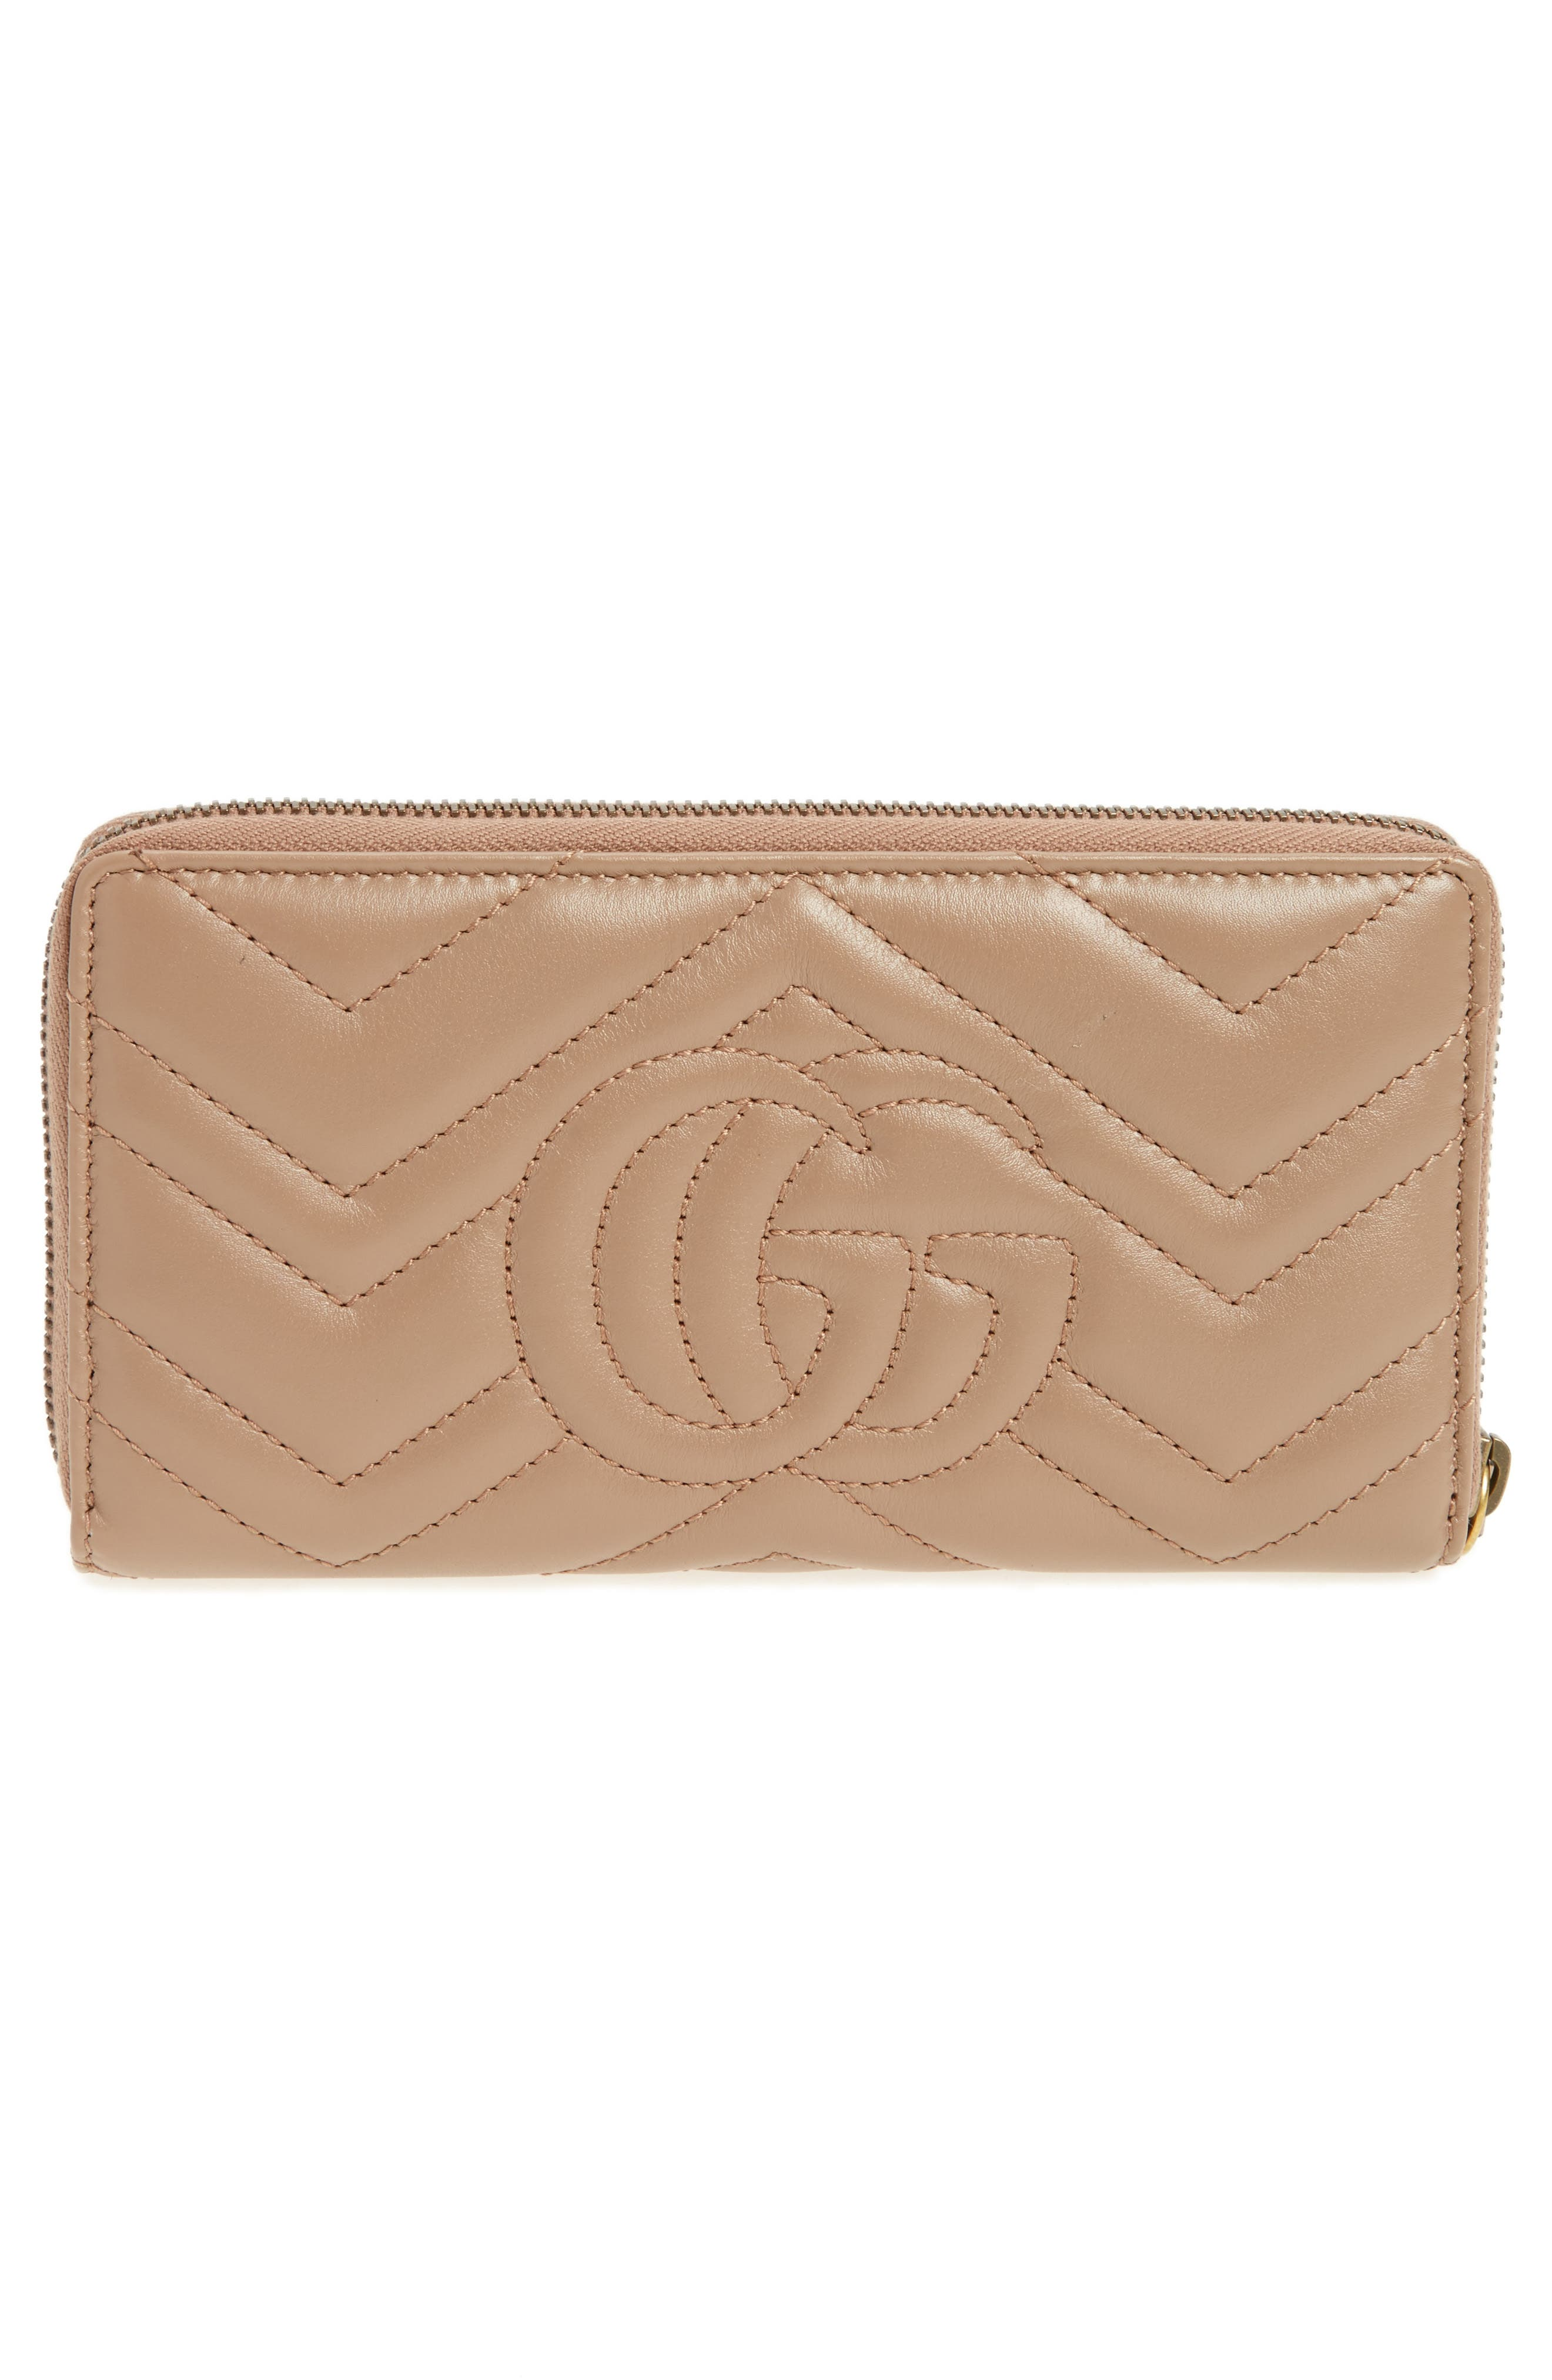 GUCCI, GG Marmont Matelassé Leather Zip-Around Wallet, Alternate thumbnail 5, color, PORCELAIN ROSE